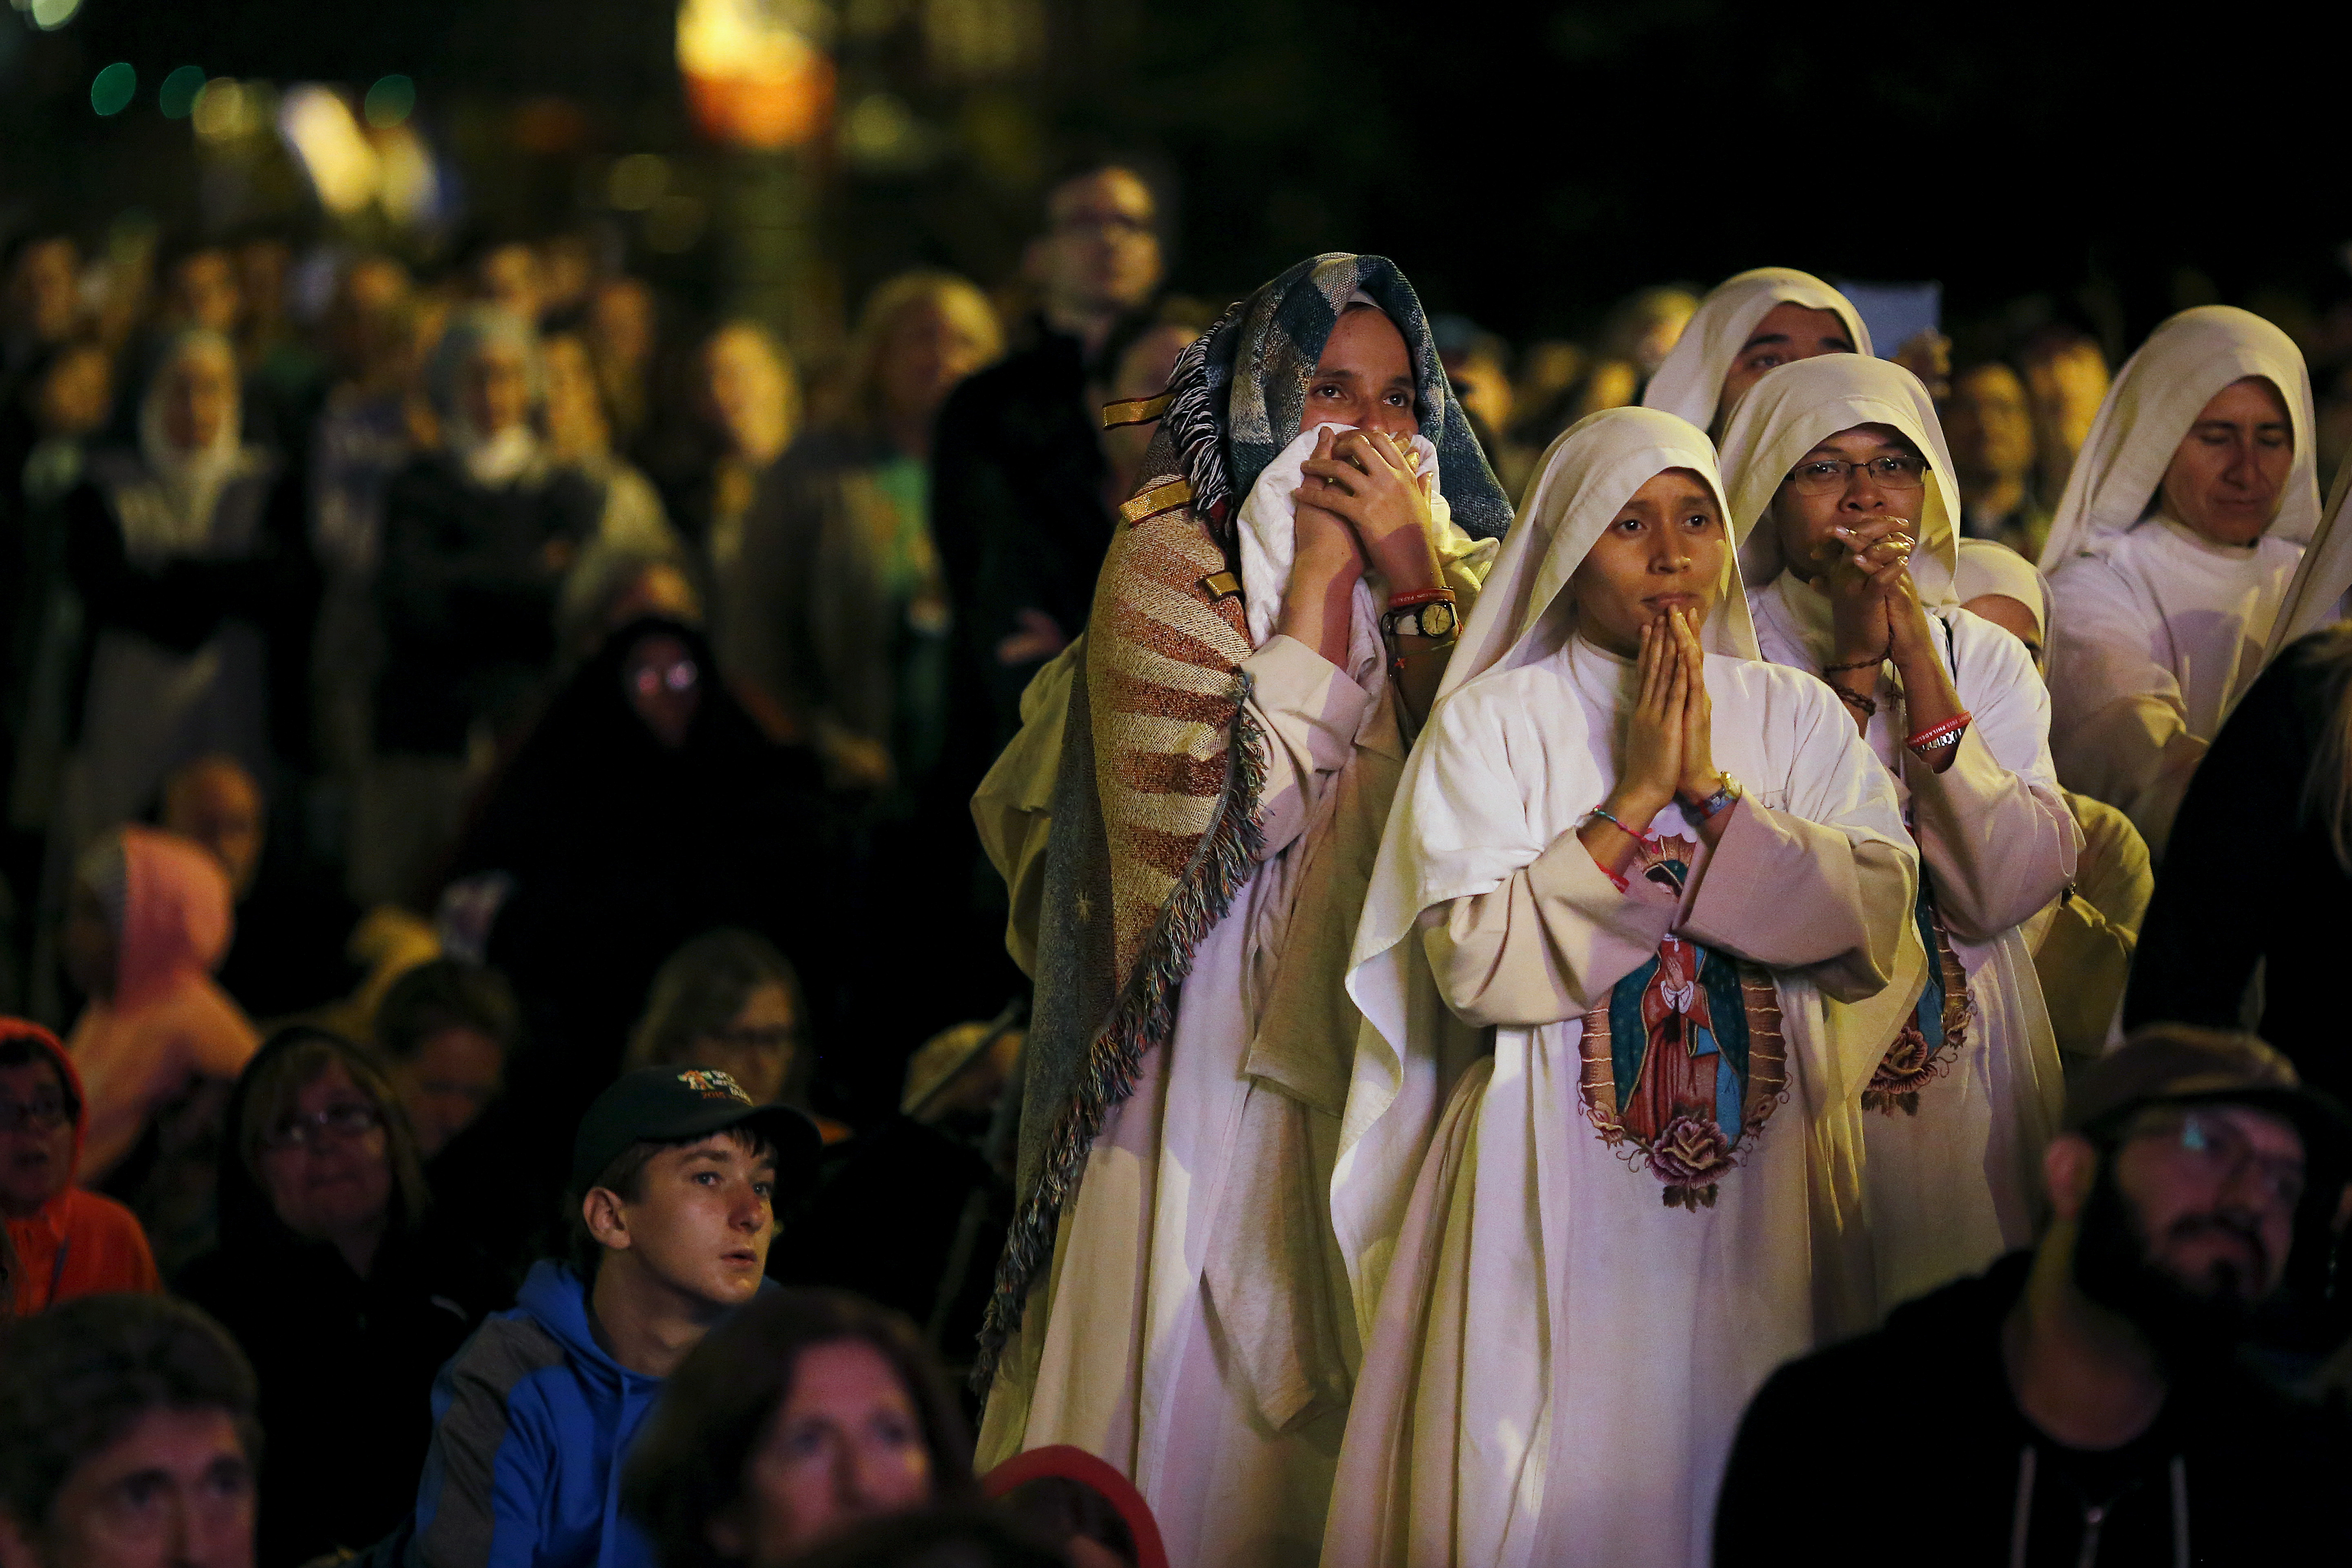 Nuns watch Pope Francis' speech Sept. 27 on a screen during the Festival of Families rally Philadelphia. Credit: Carlos Barria/ Reuters